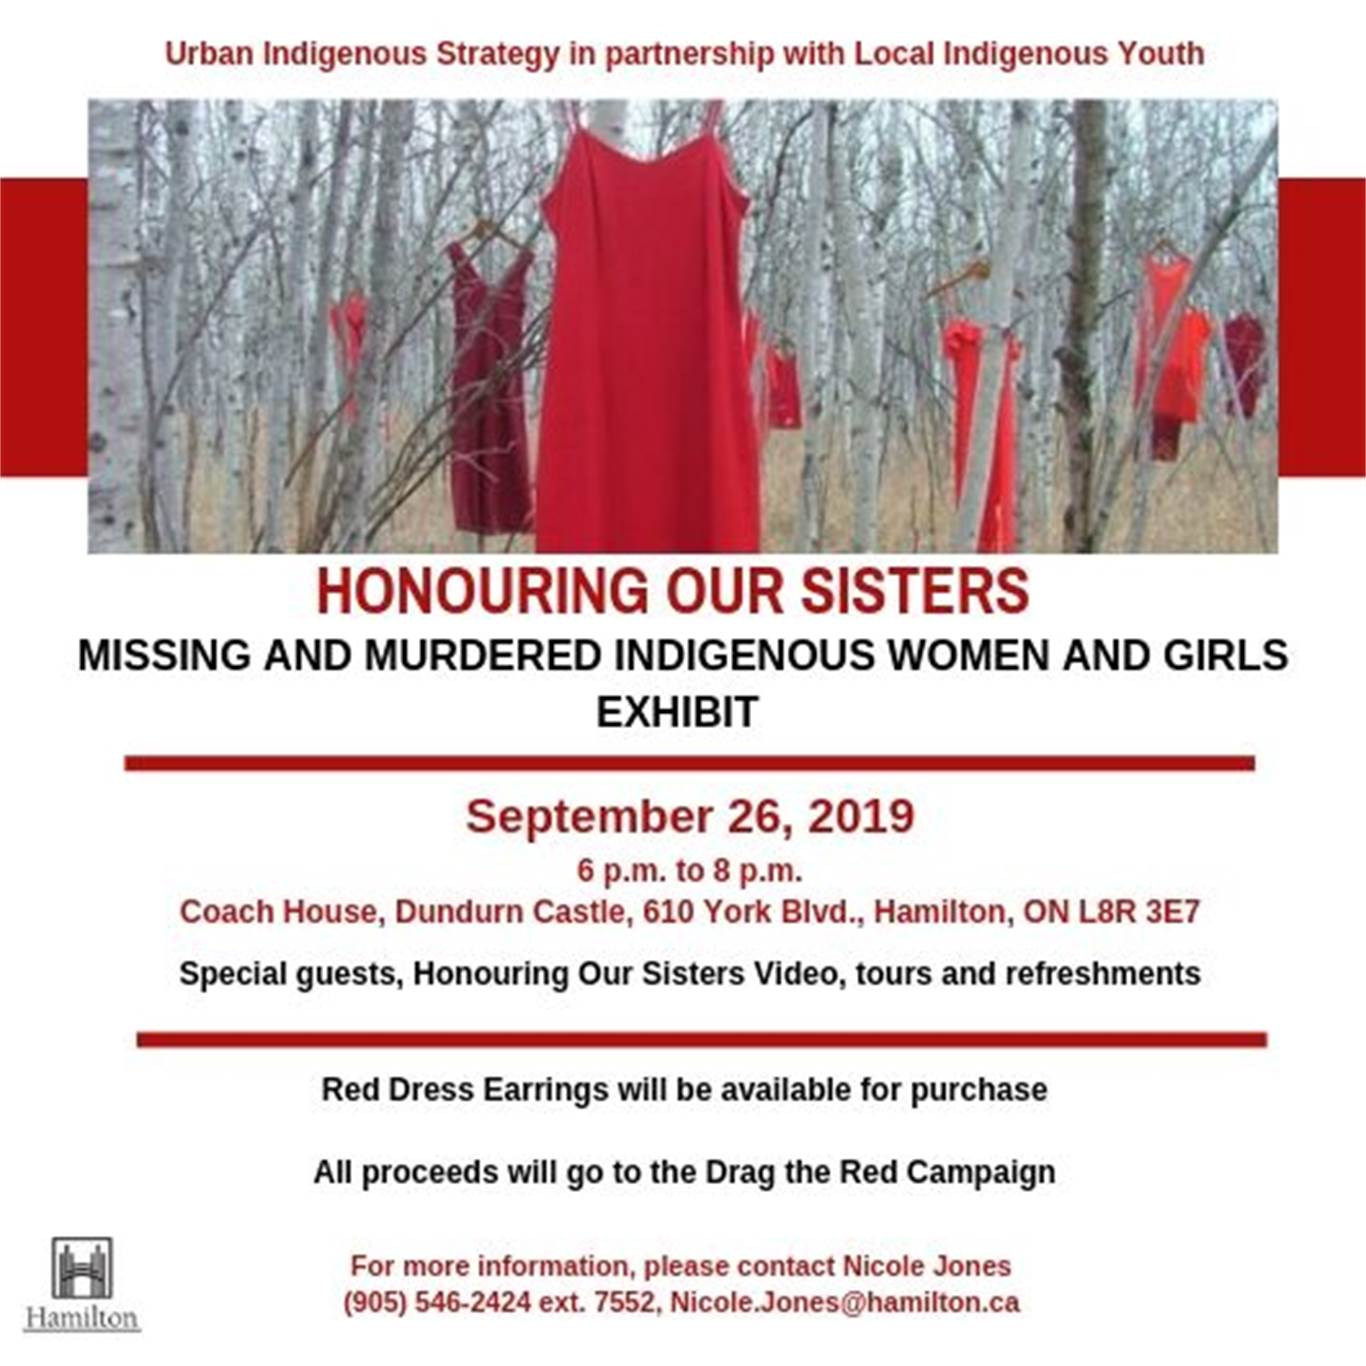 Honouring Our Sisters - Missing and Murdered Indigenous Women and Girls Exhibit